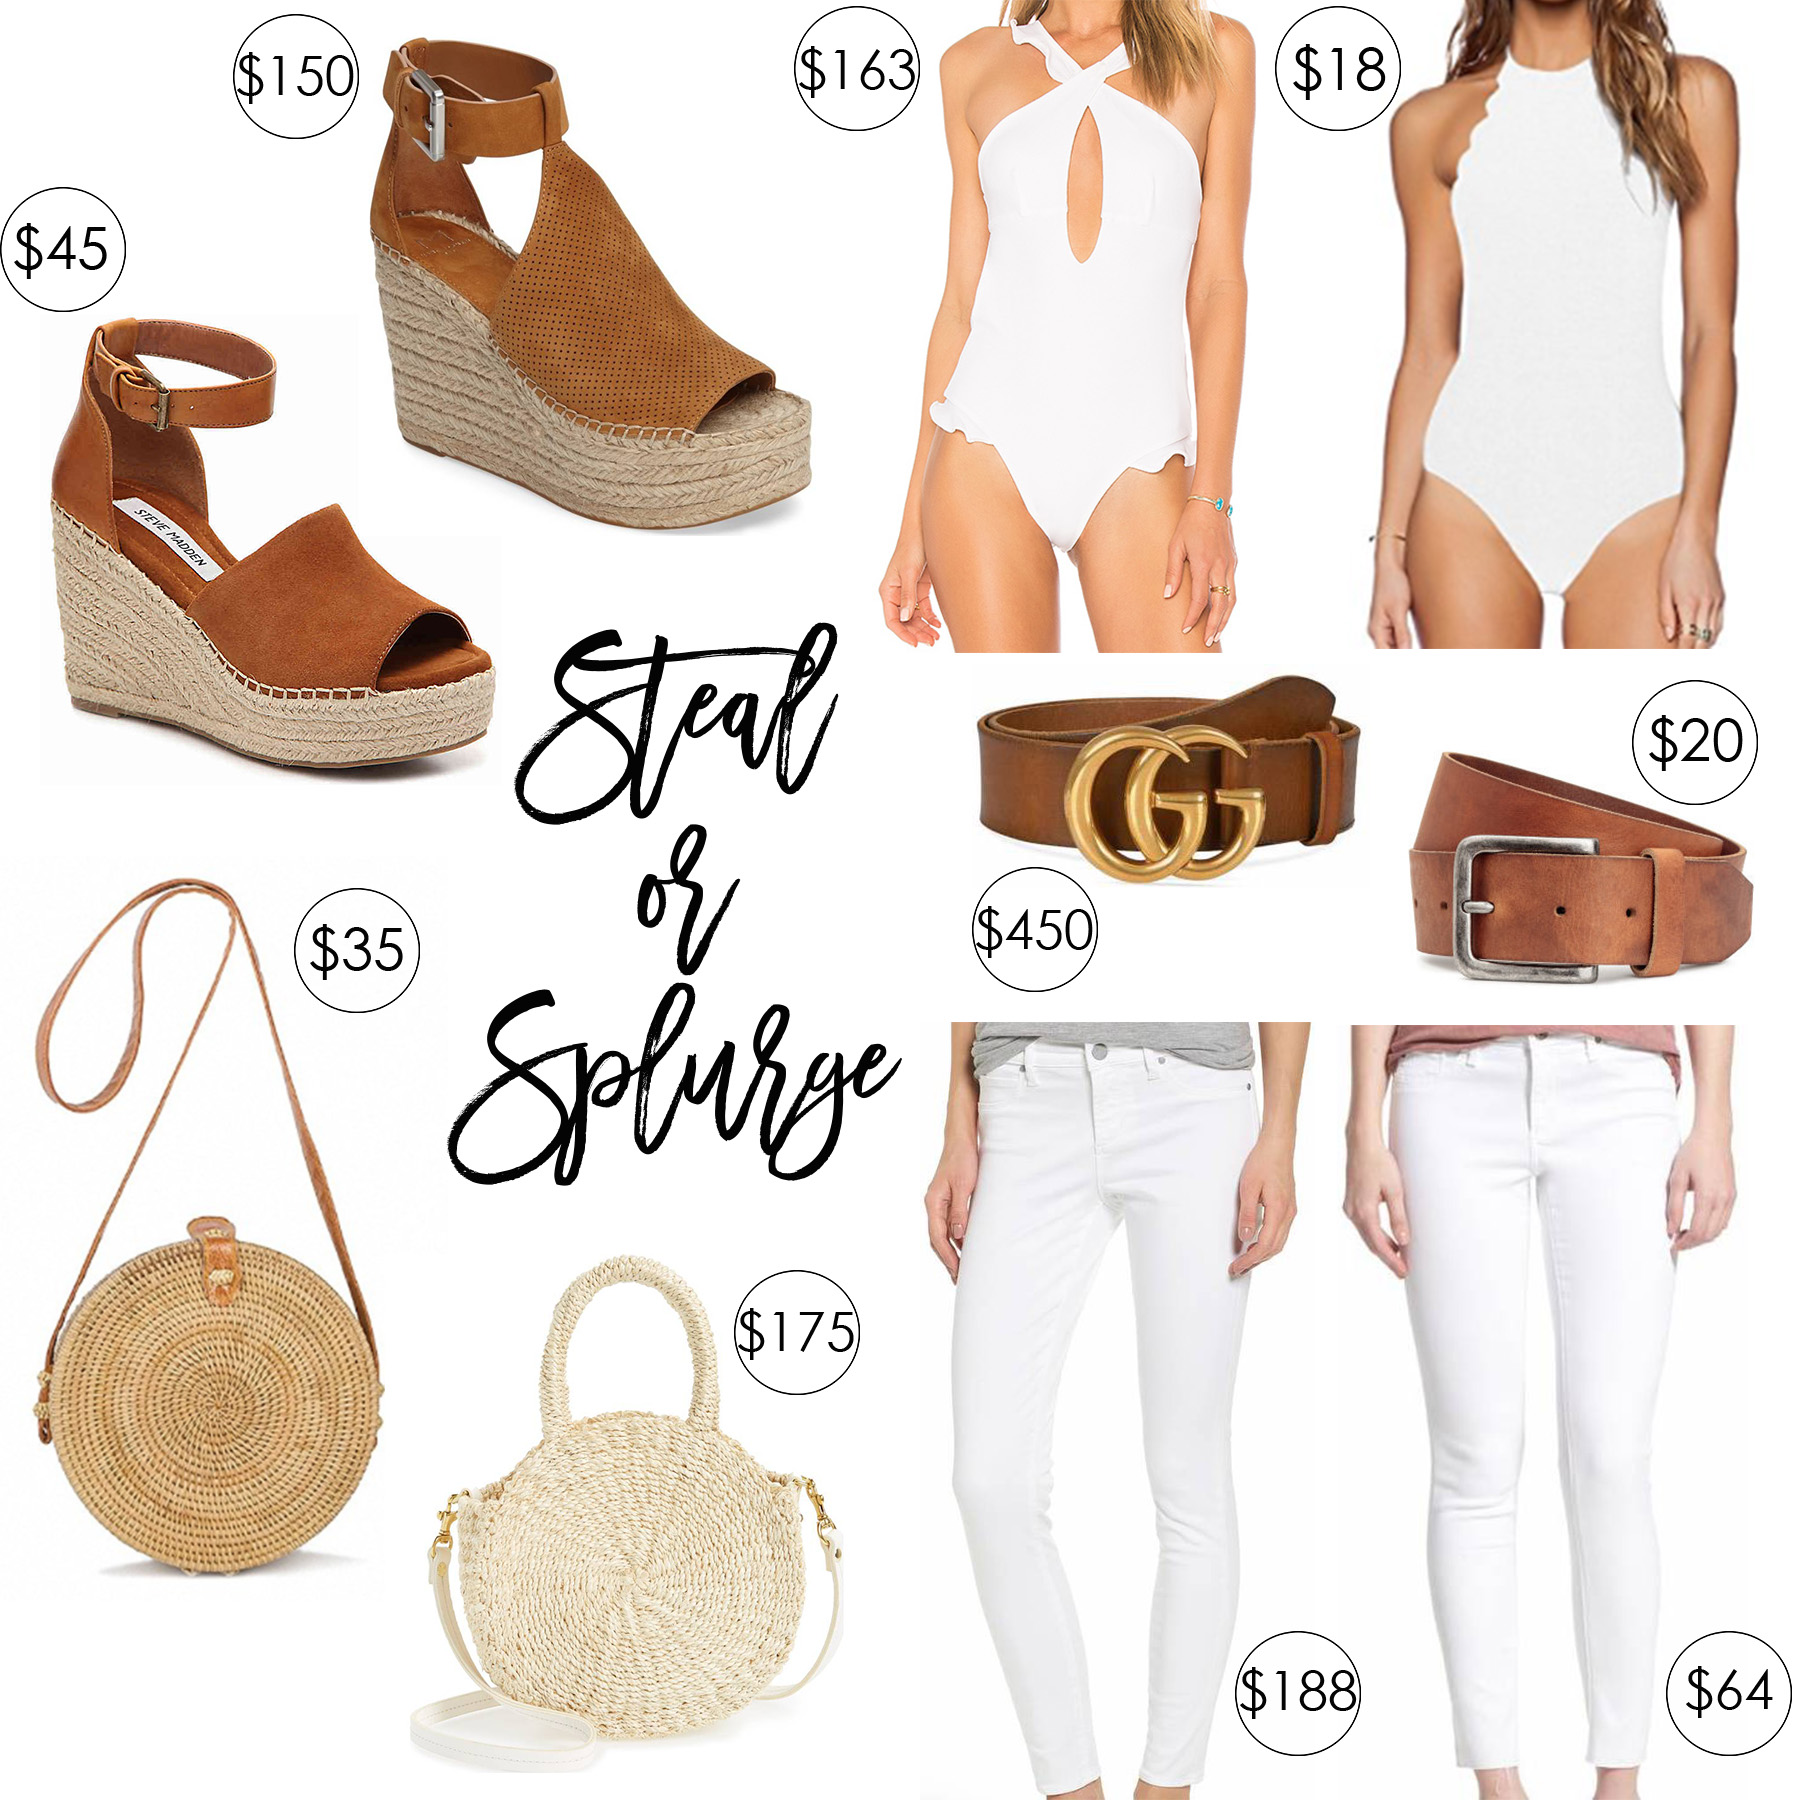 Look - Finds day mothers splurge vs steal video